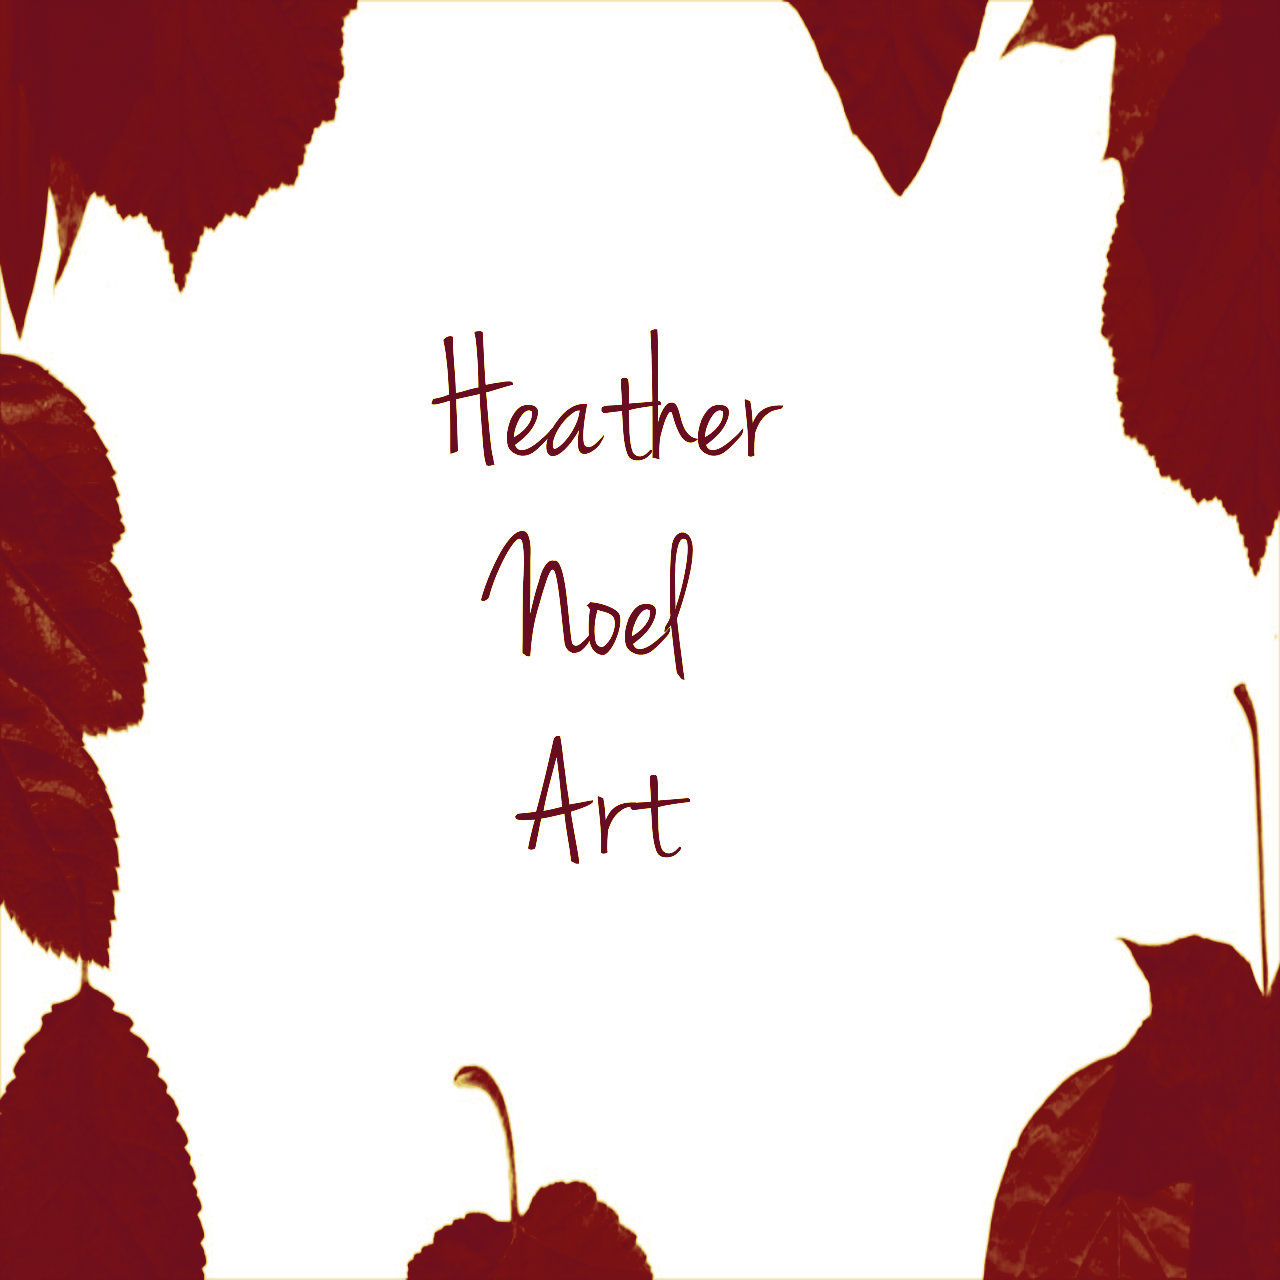 heather noel art.jpg